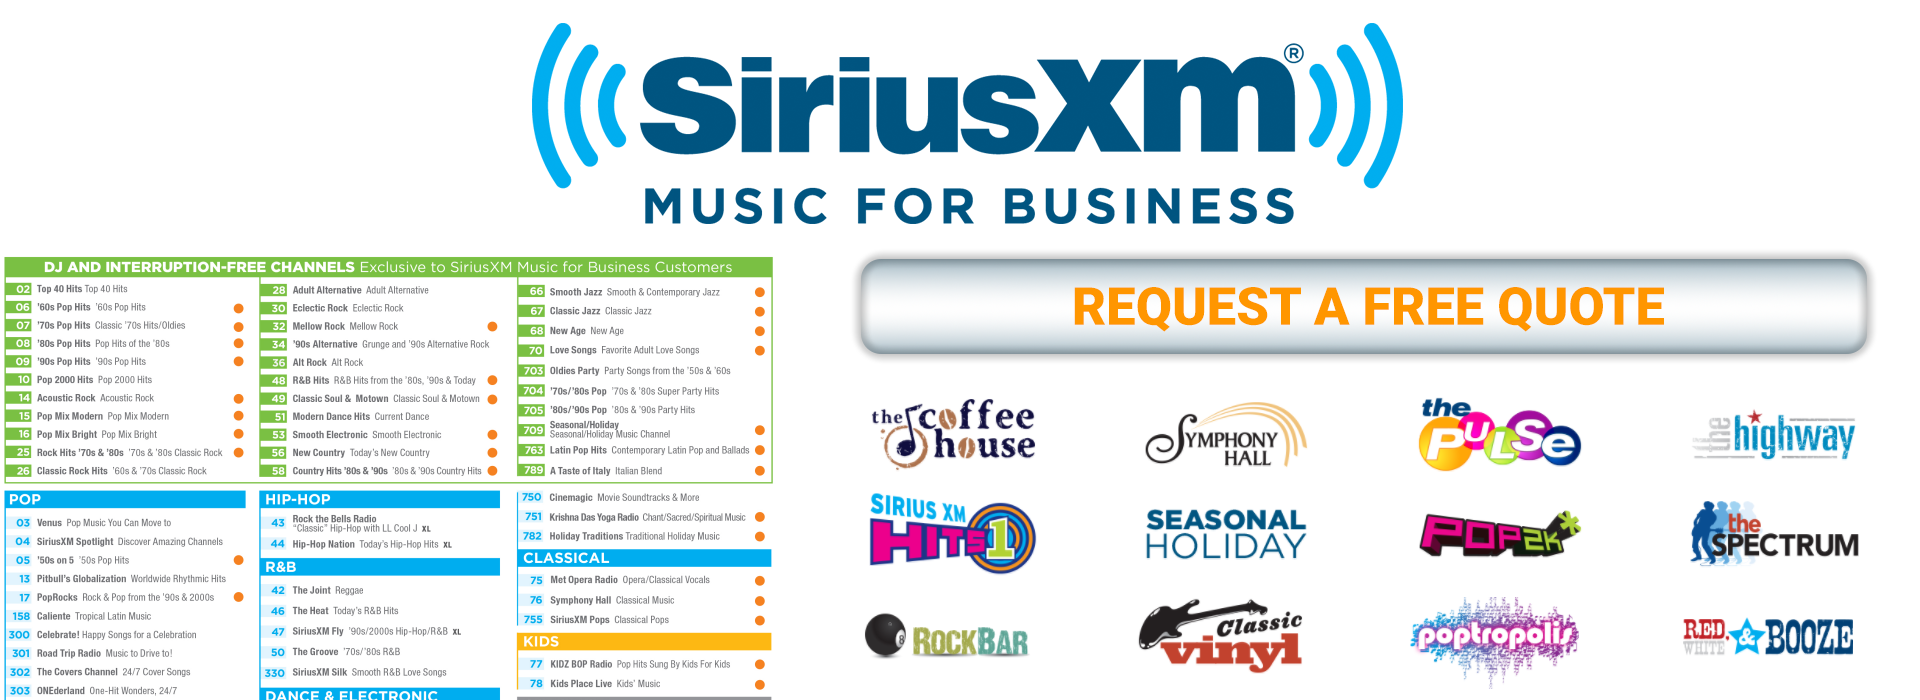 SiriusXM Music for Business | Sonu Media | (877) 307-6677